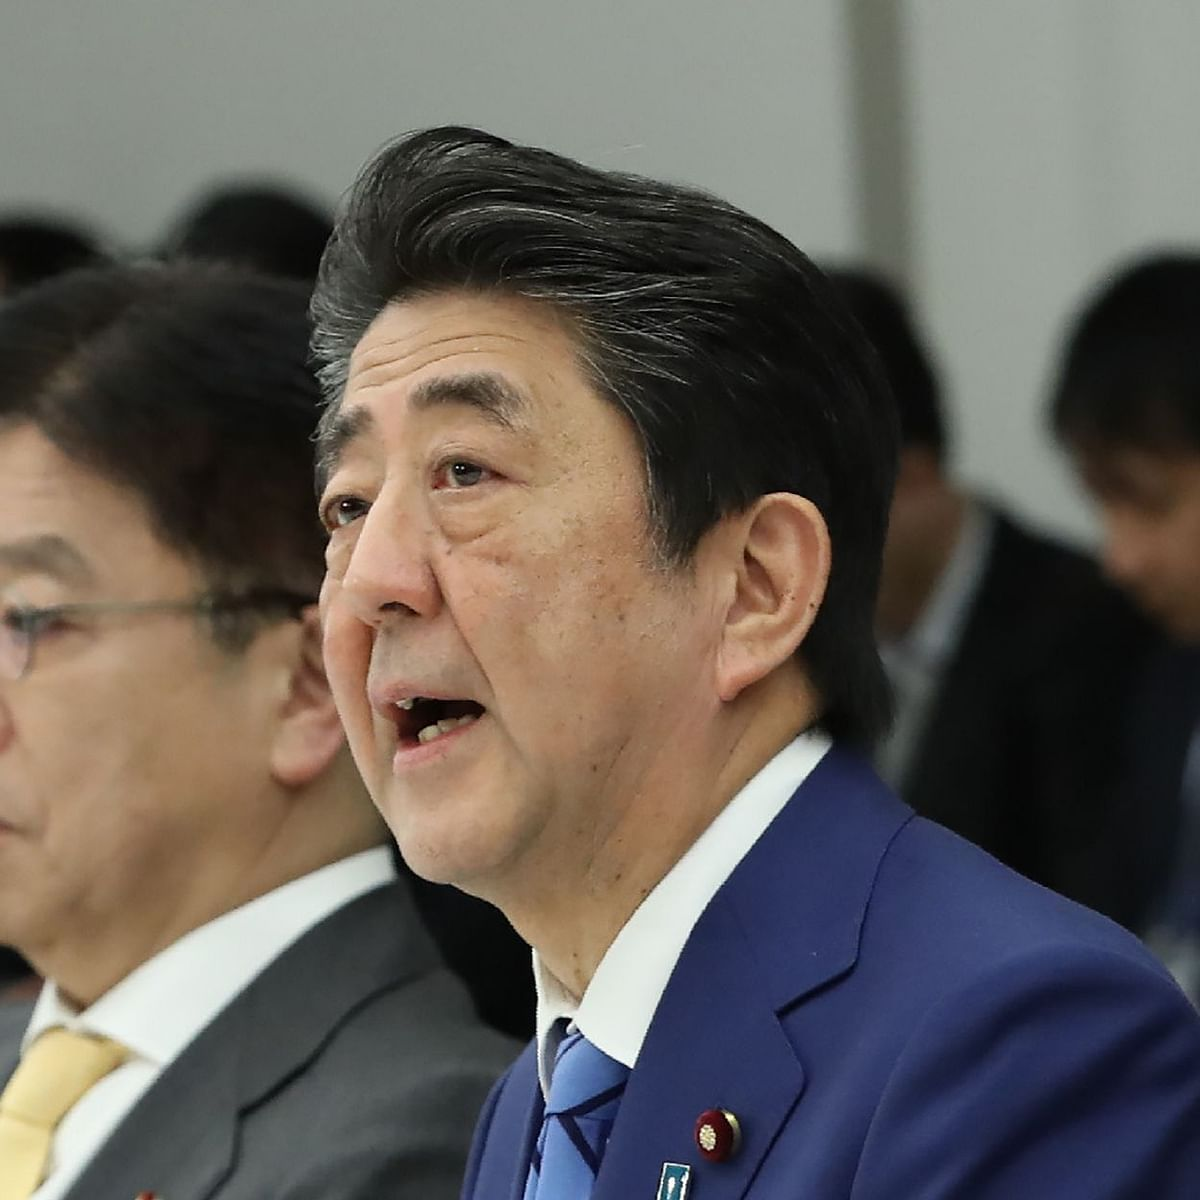 Japan govt to cut employee bonuses for 1st time in decade